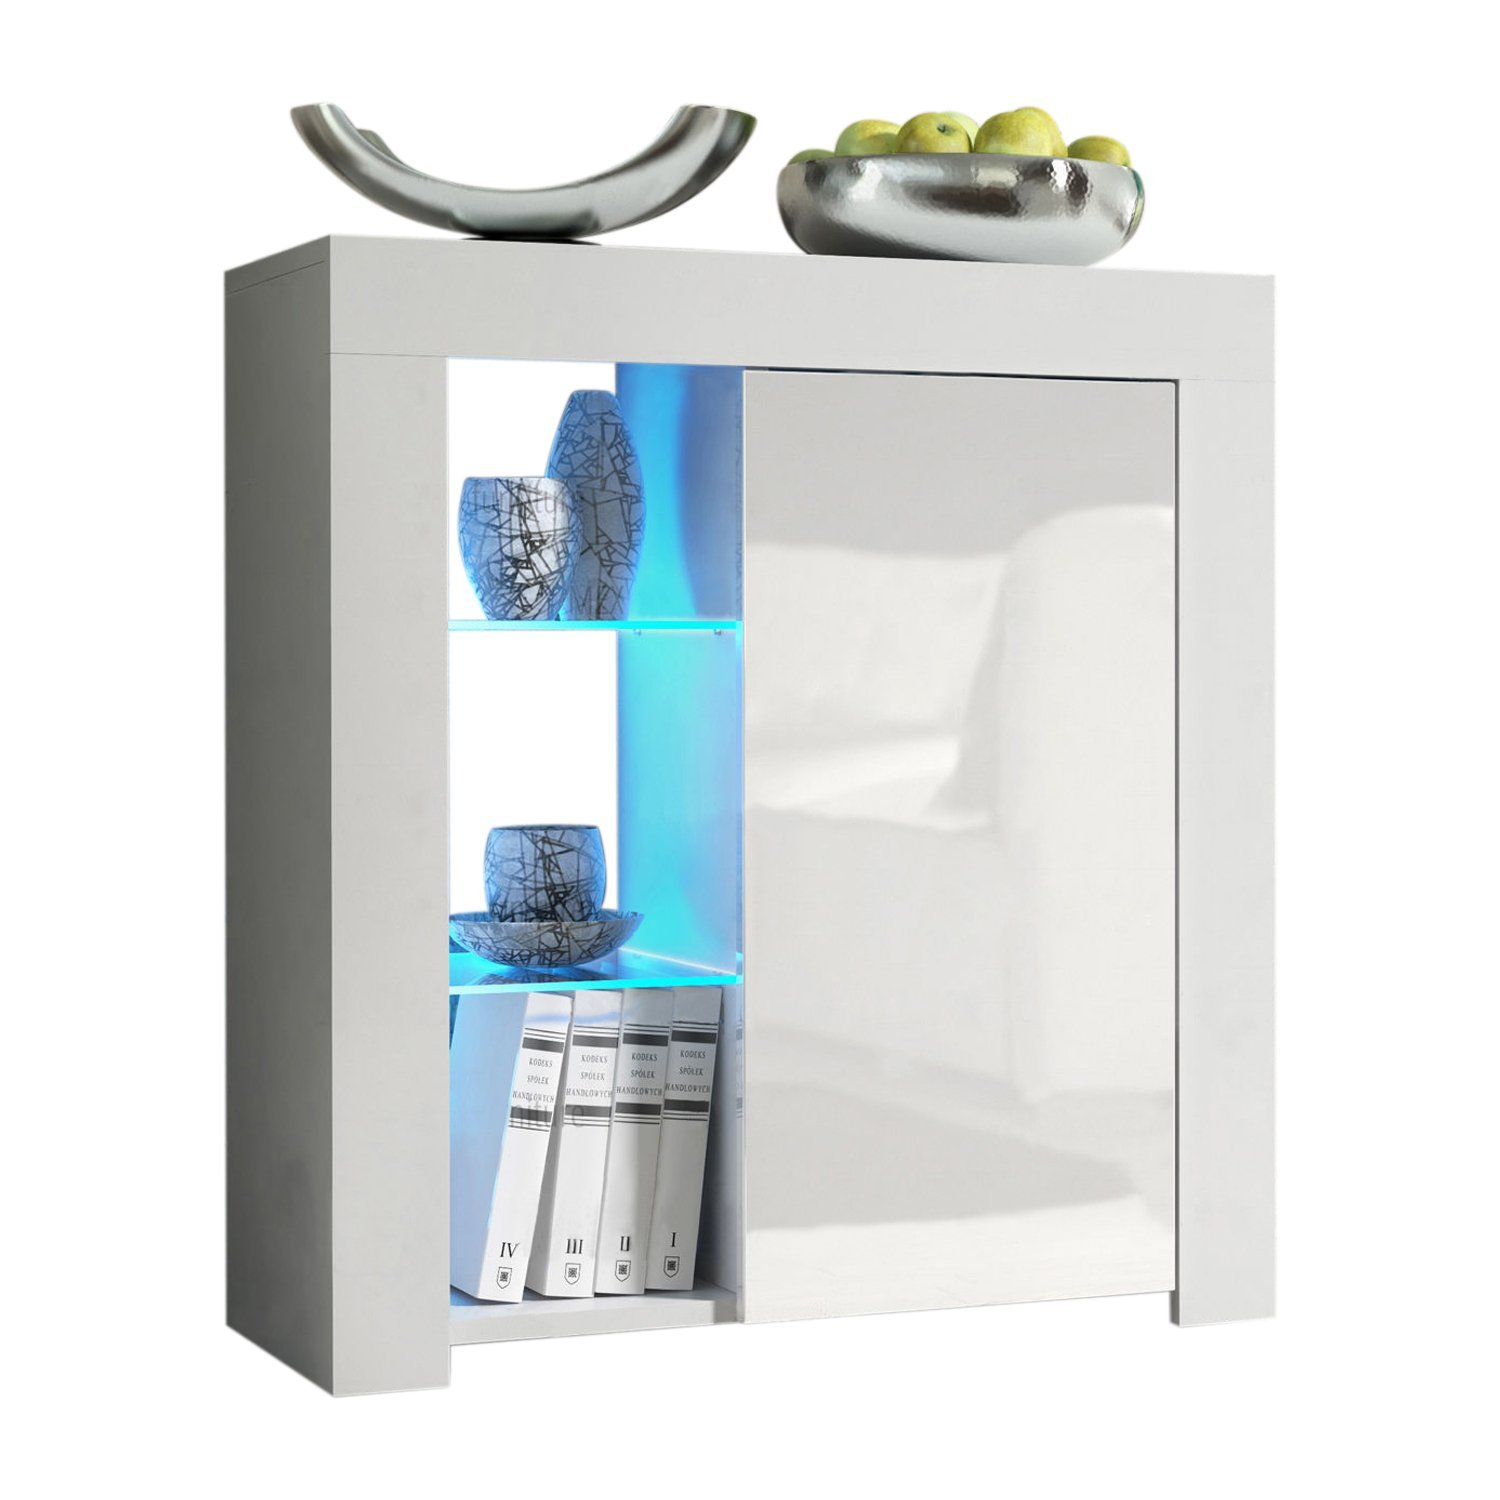 Meble Furniture & Rugs Milano 30'' Sideboard 1D Matte Body High Gloss Doors with 16 Color LEDs White